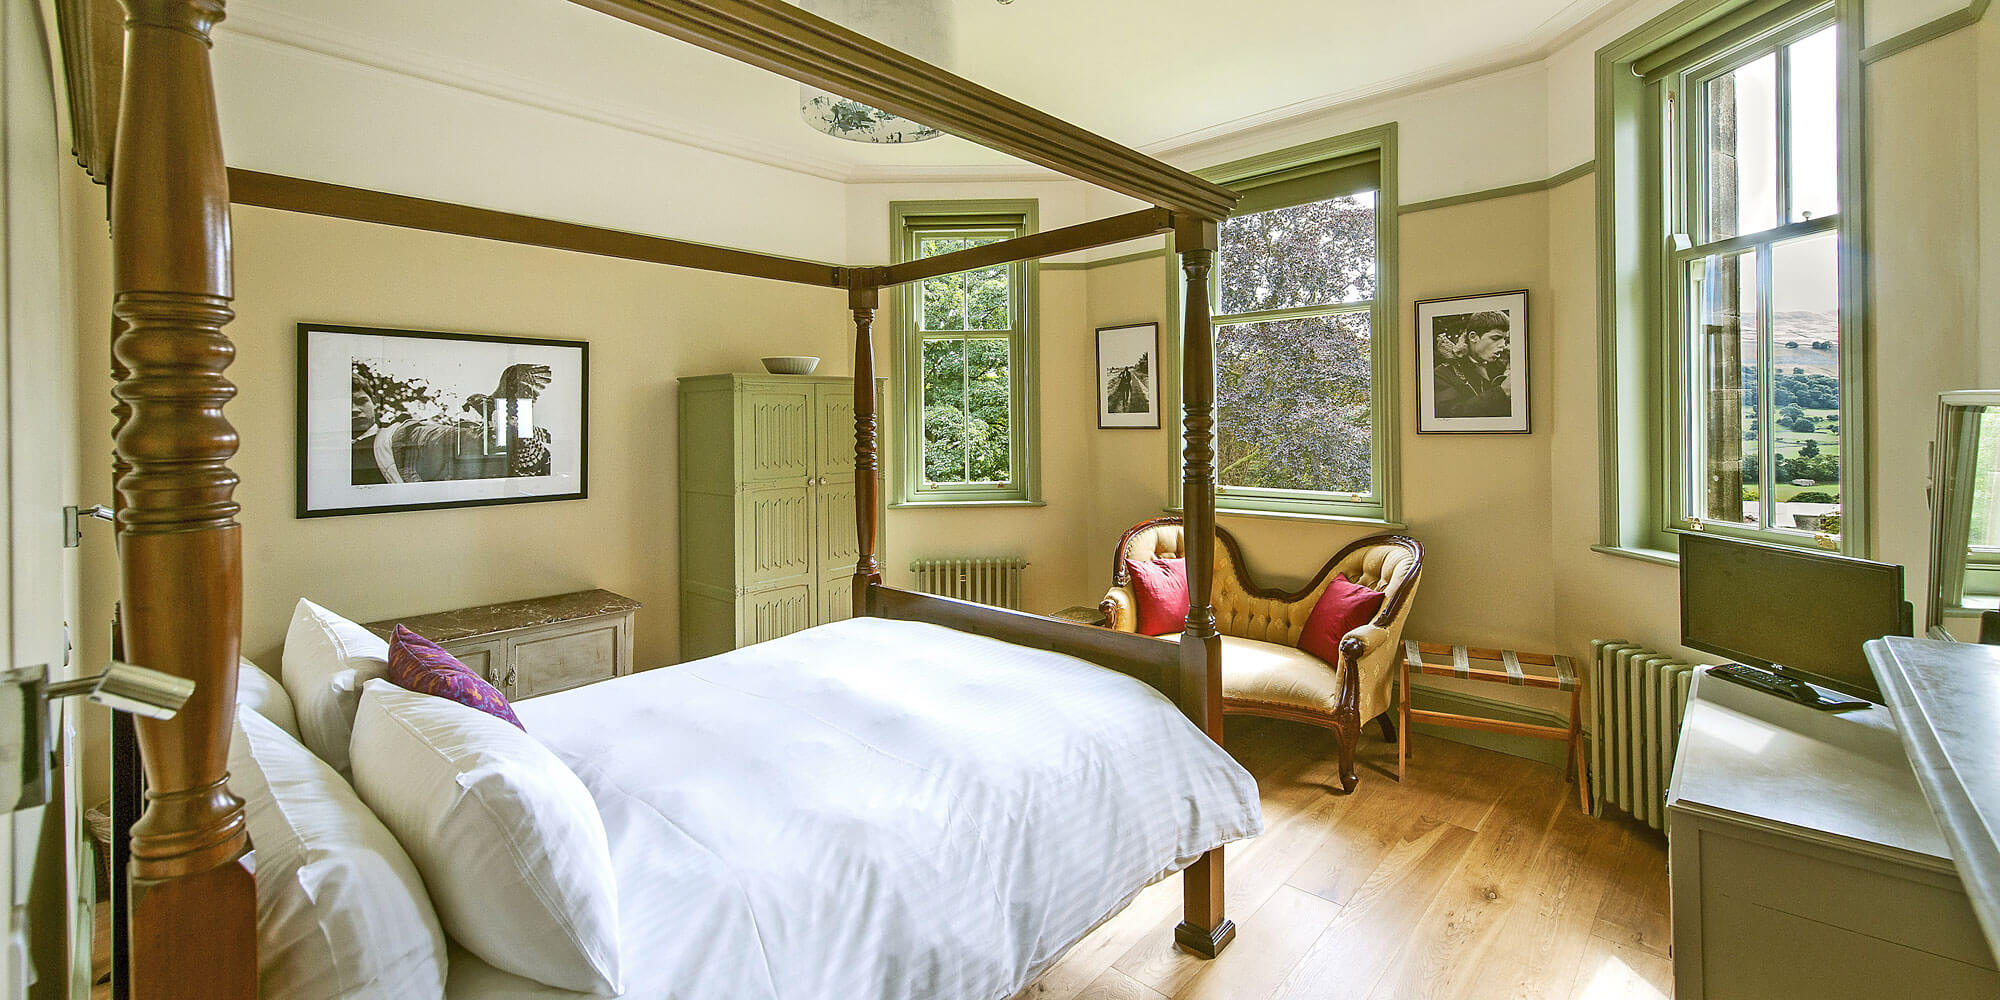 Stow House, Aysgarth, Yorkshire Dales Hotel Reviews